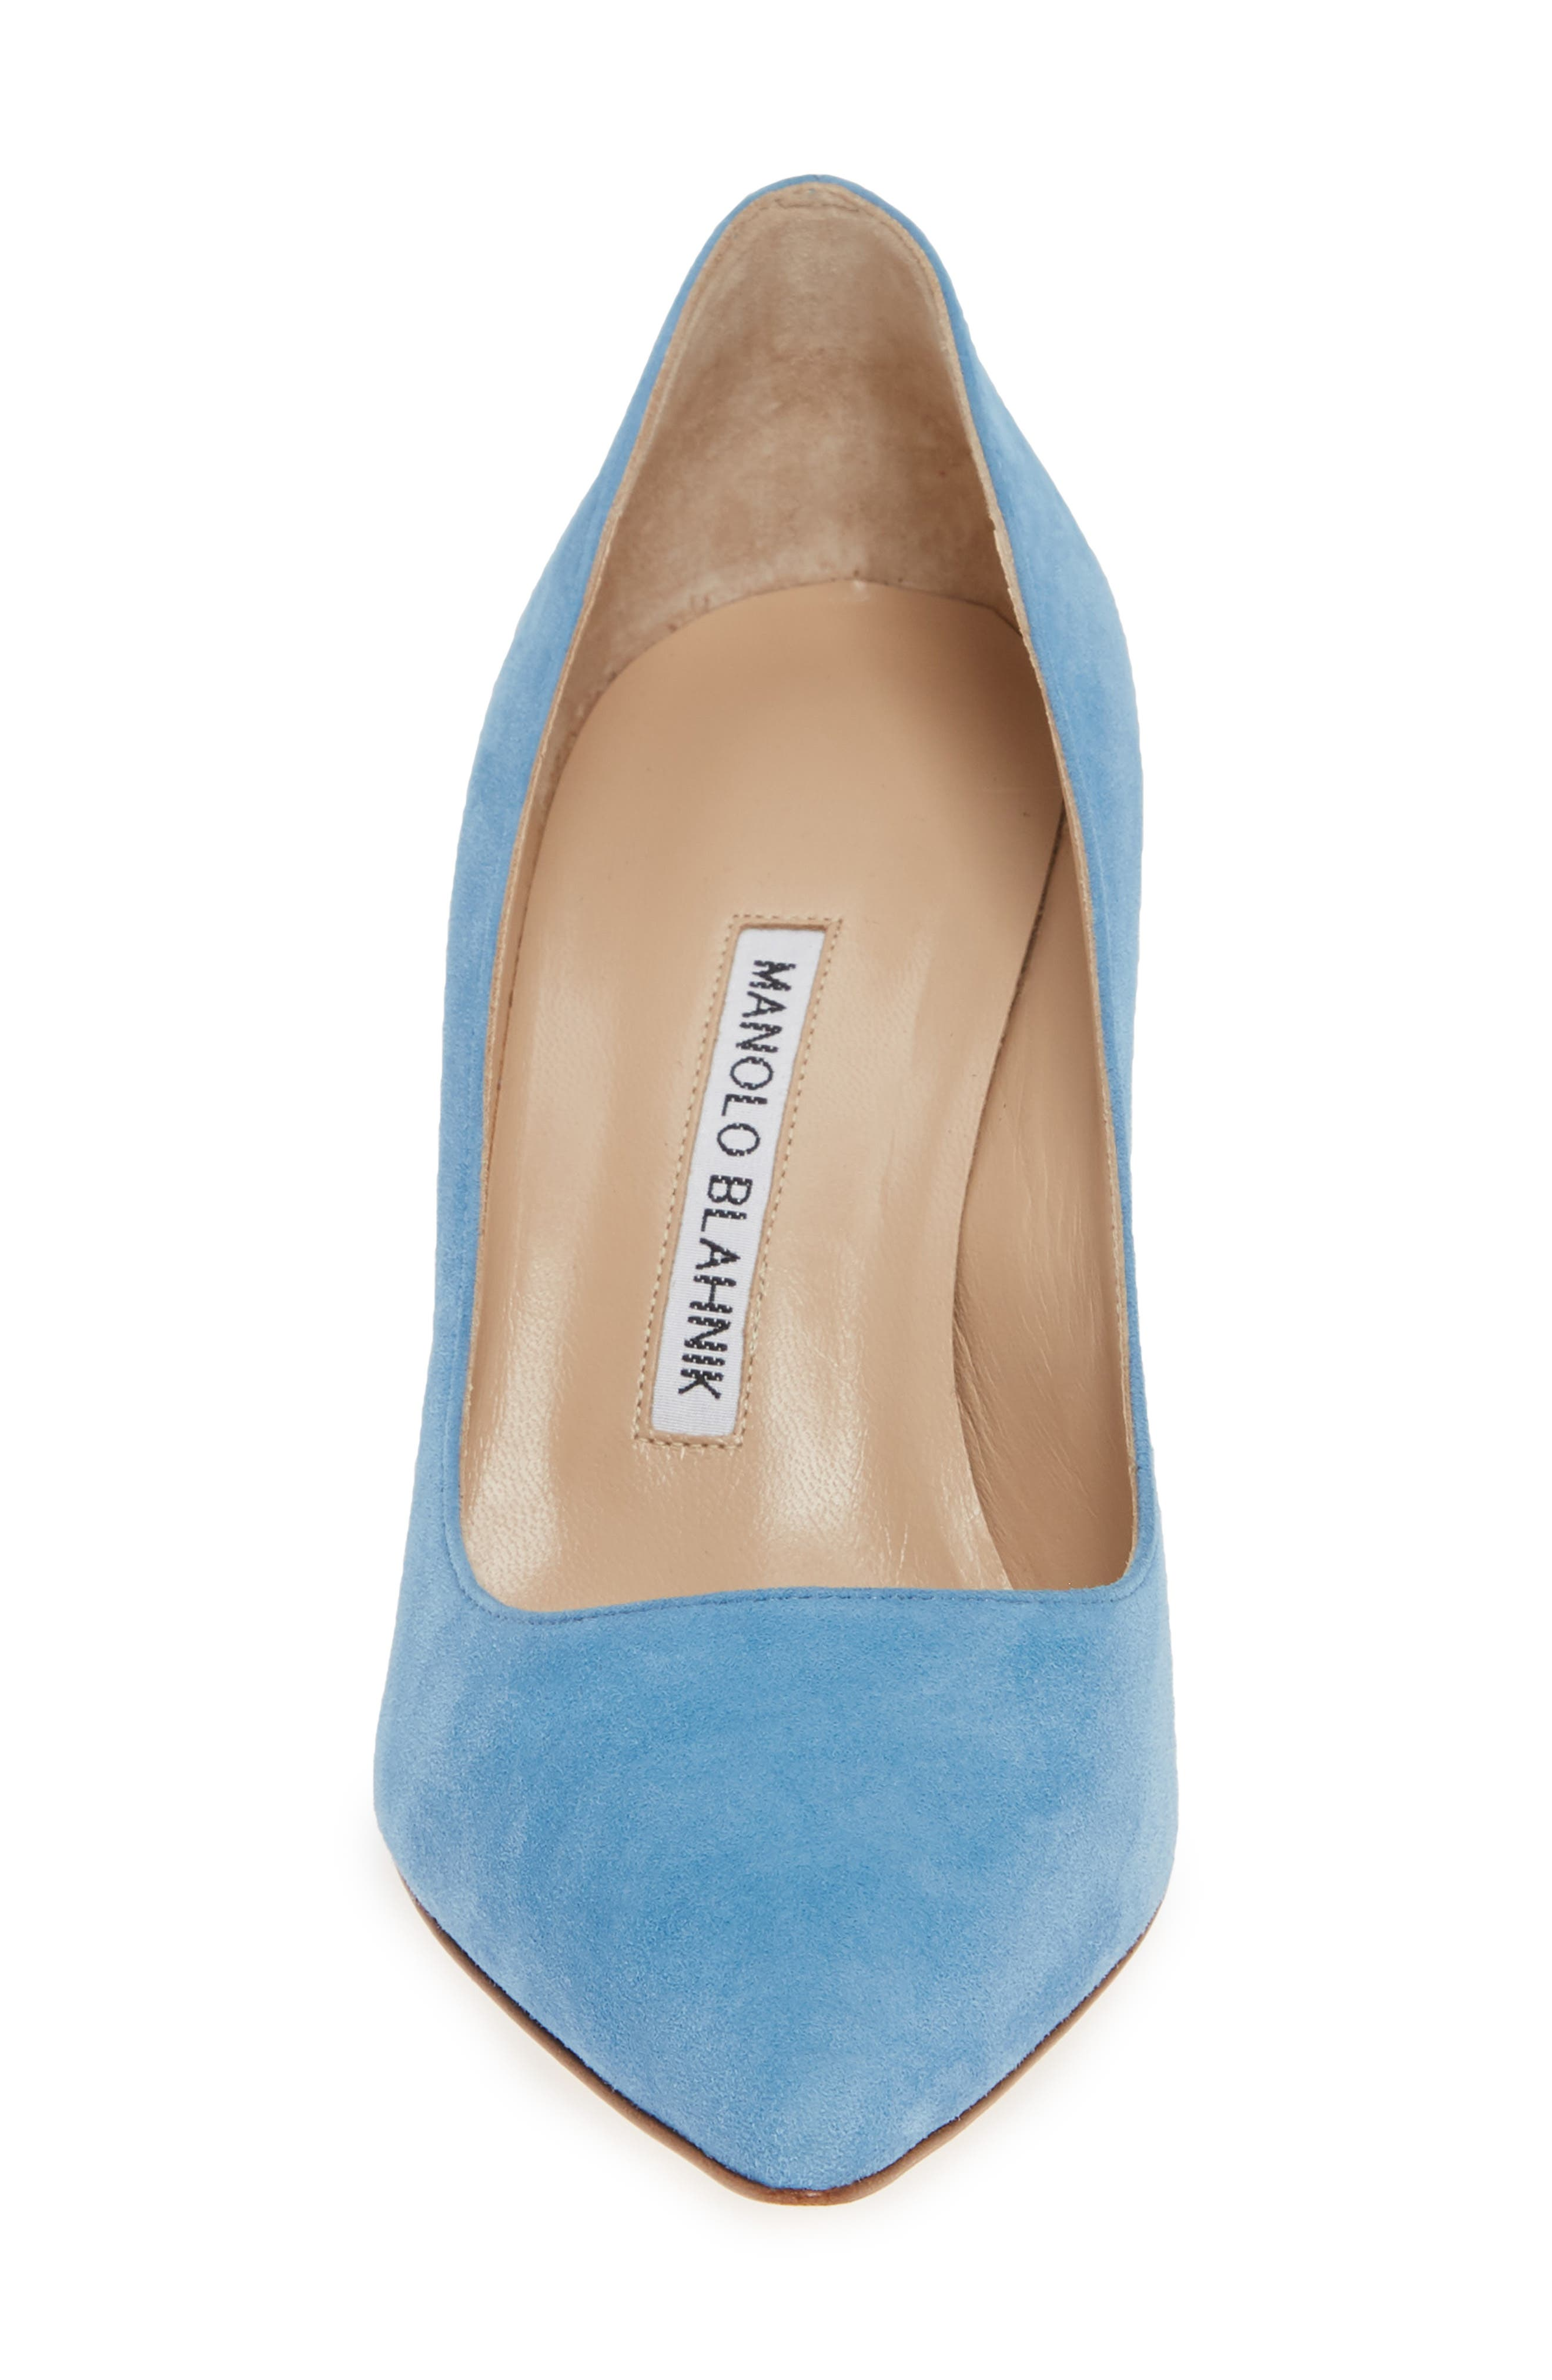 BB Pointy Toe Pump,                             Alternate thumbnail 4, color,                             POWDER BLUE SUEDE